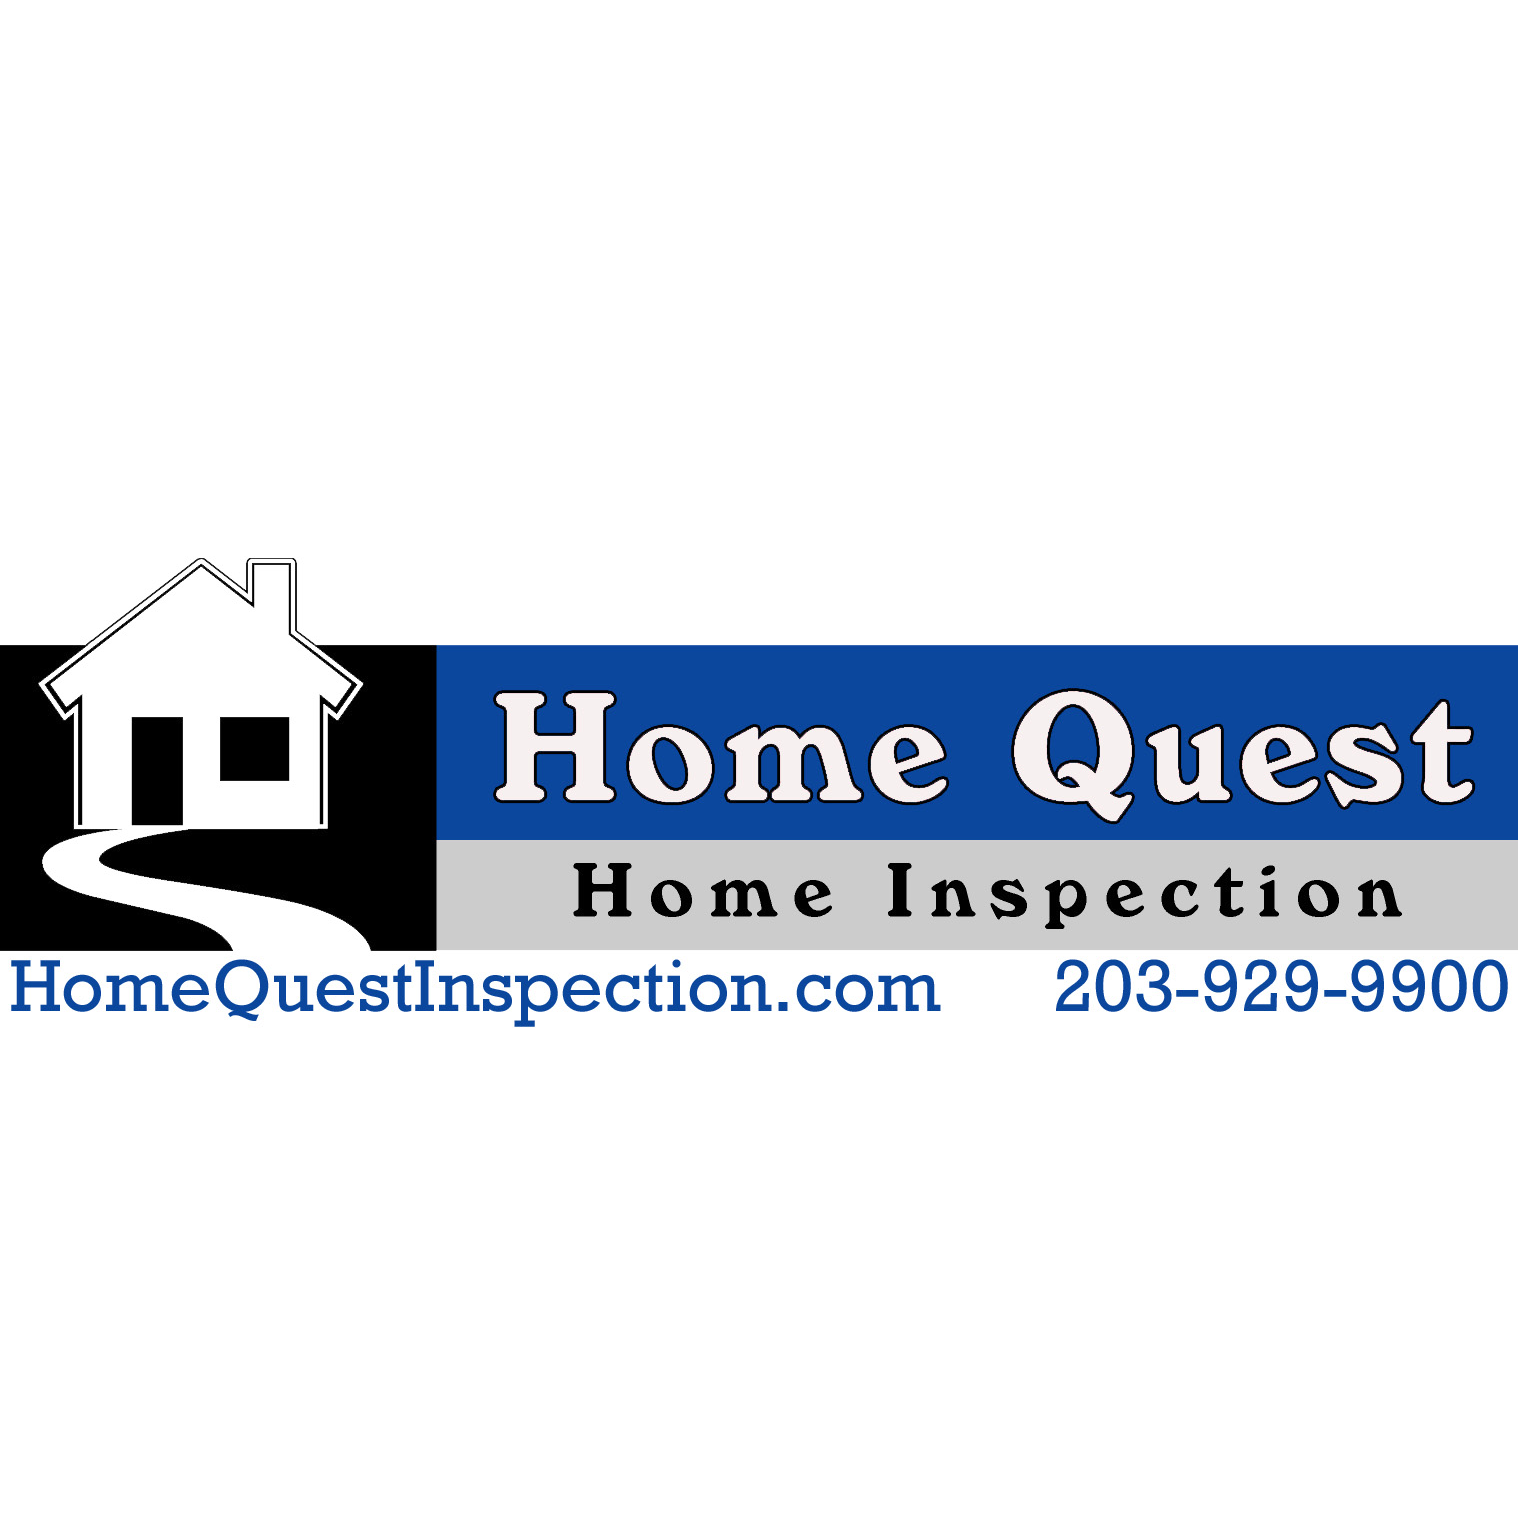 Home Quest Inspection image 3